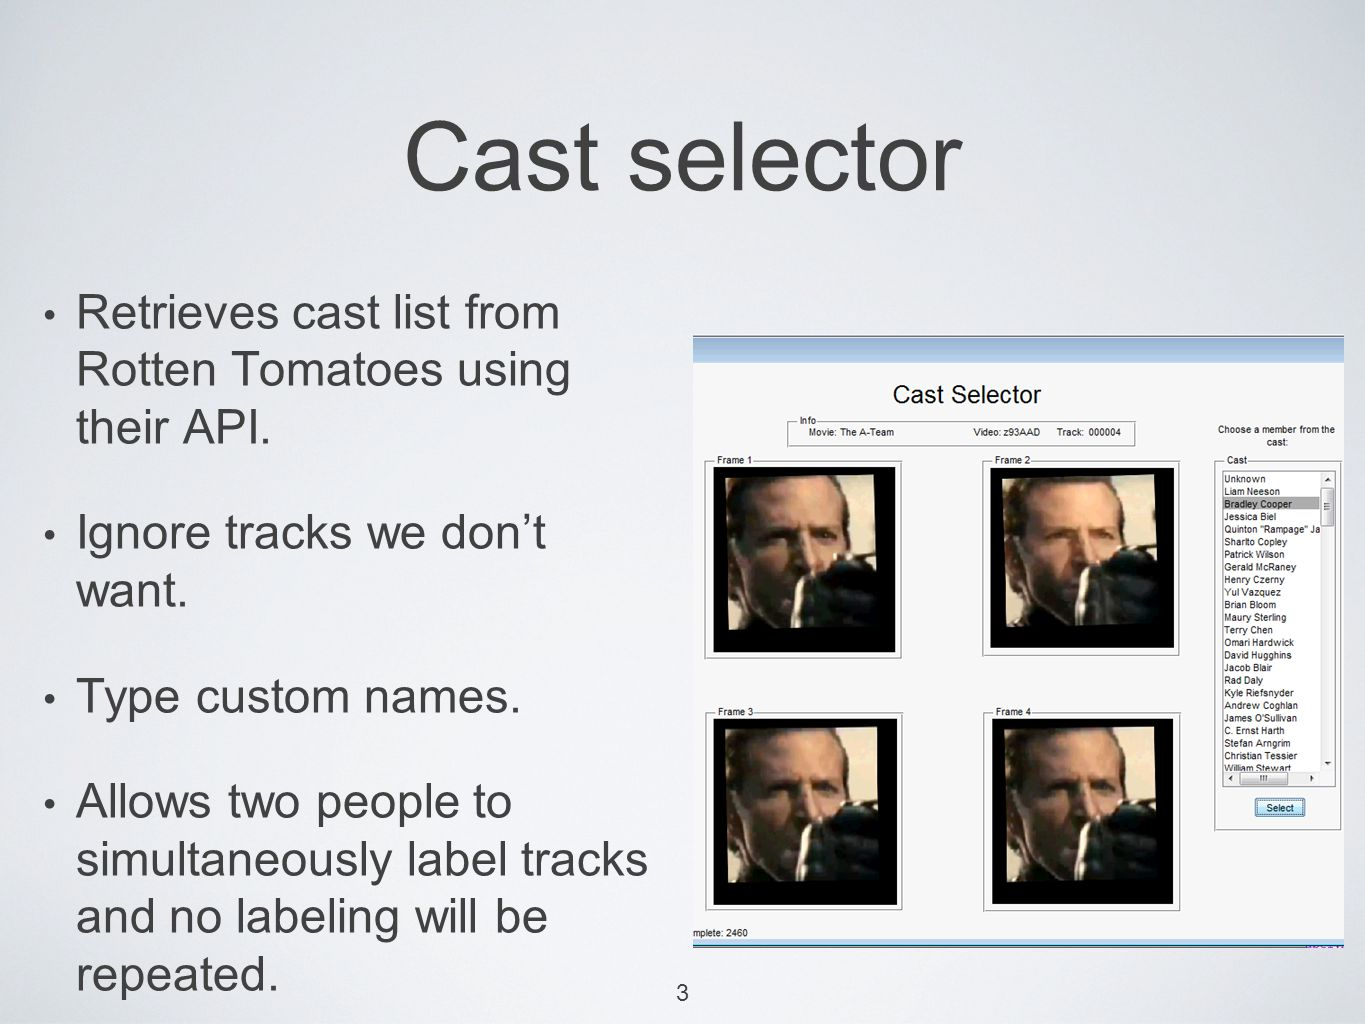 Retrieves cast list from Rotten Tomatoes using their API.